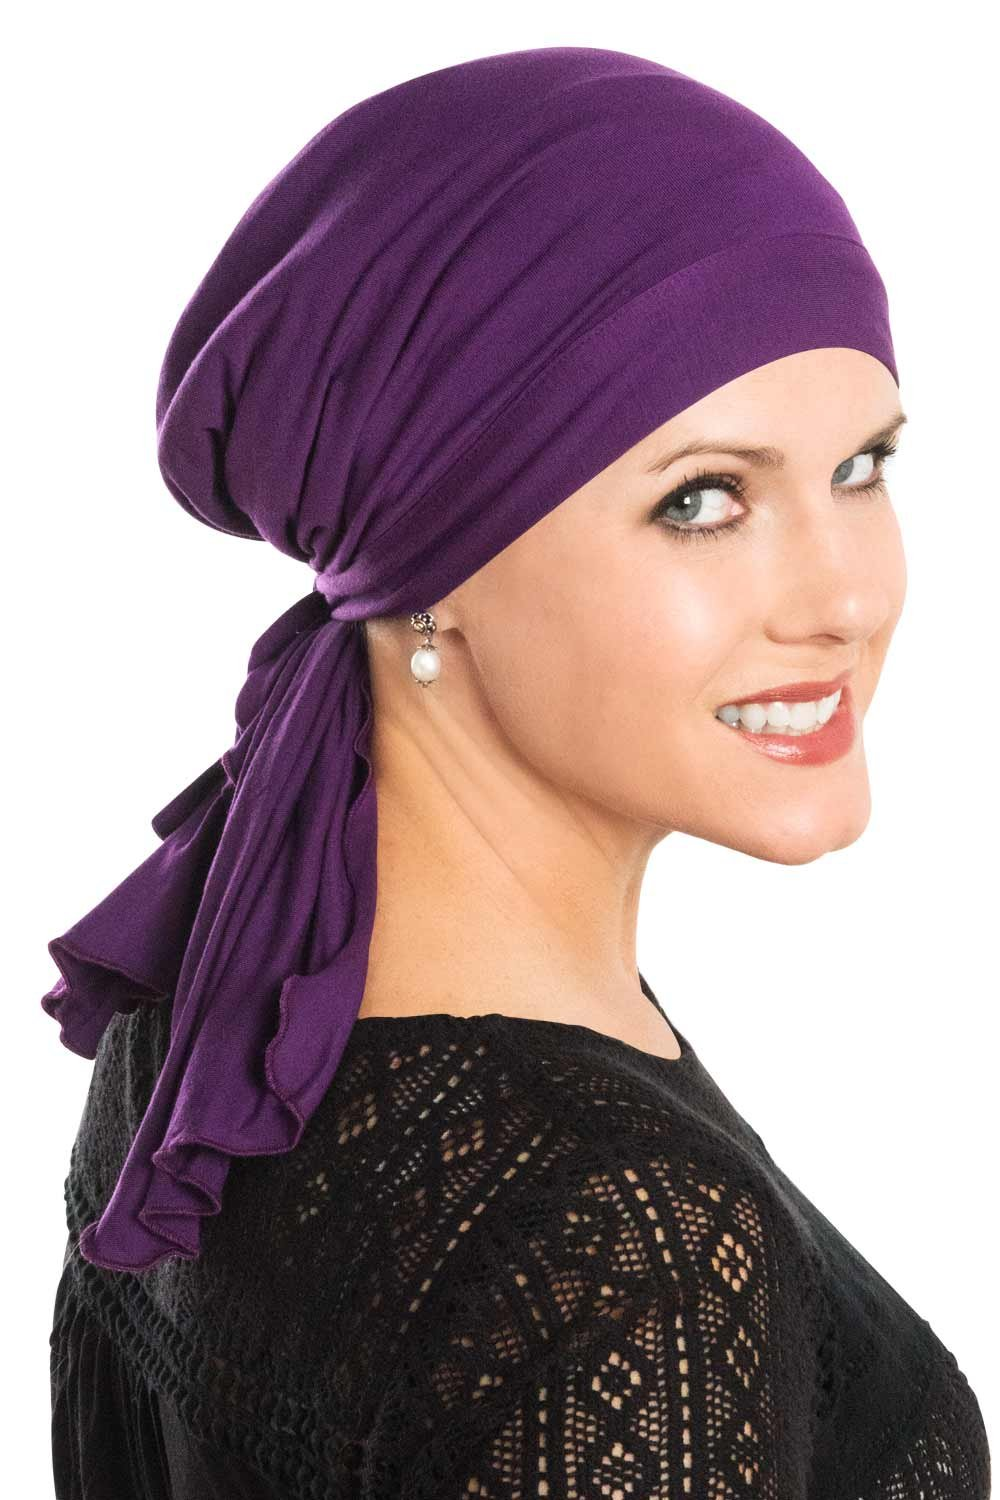 Cardani So Simple Scarf - Pre Tied Head Scarf for Women in Soft Bamboo - Cancer & Chemo Patients Luxury Bamboo - Plum